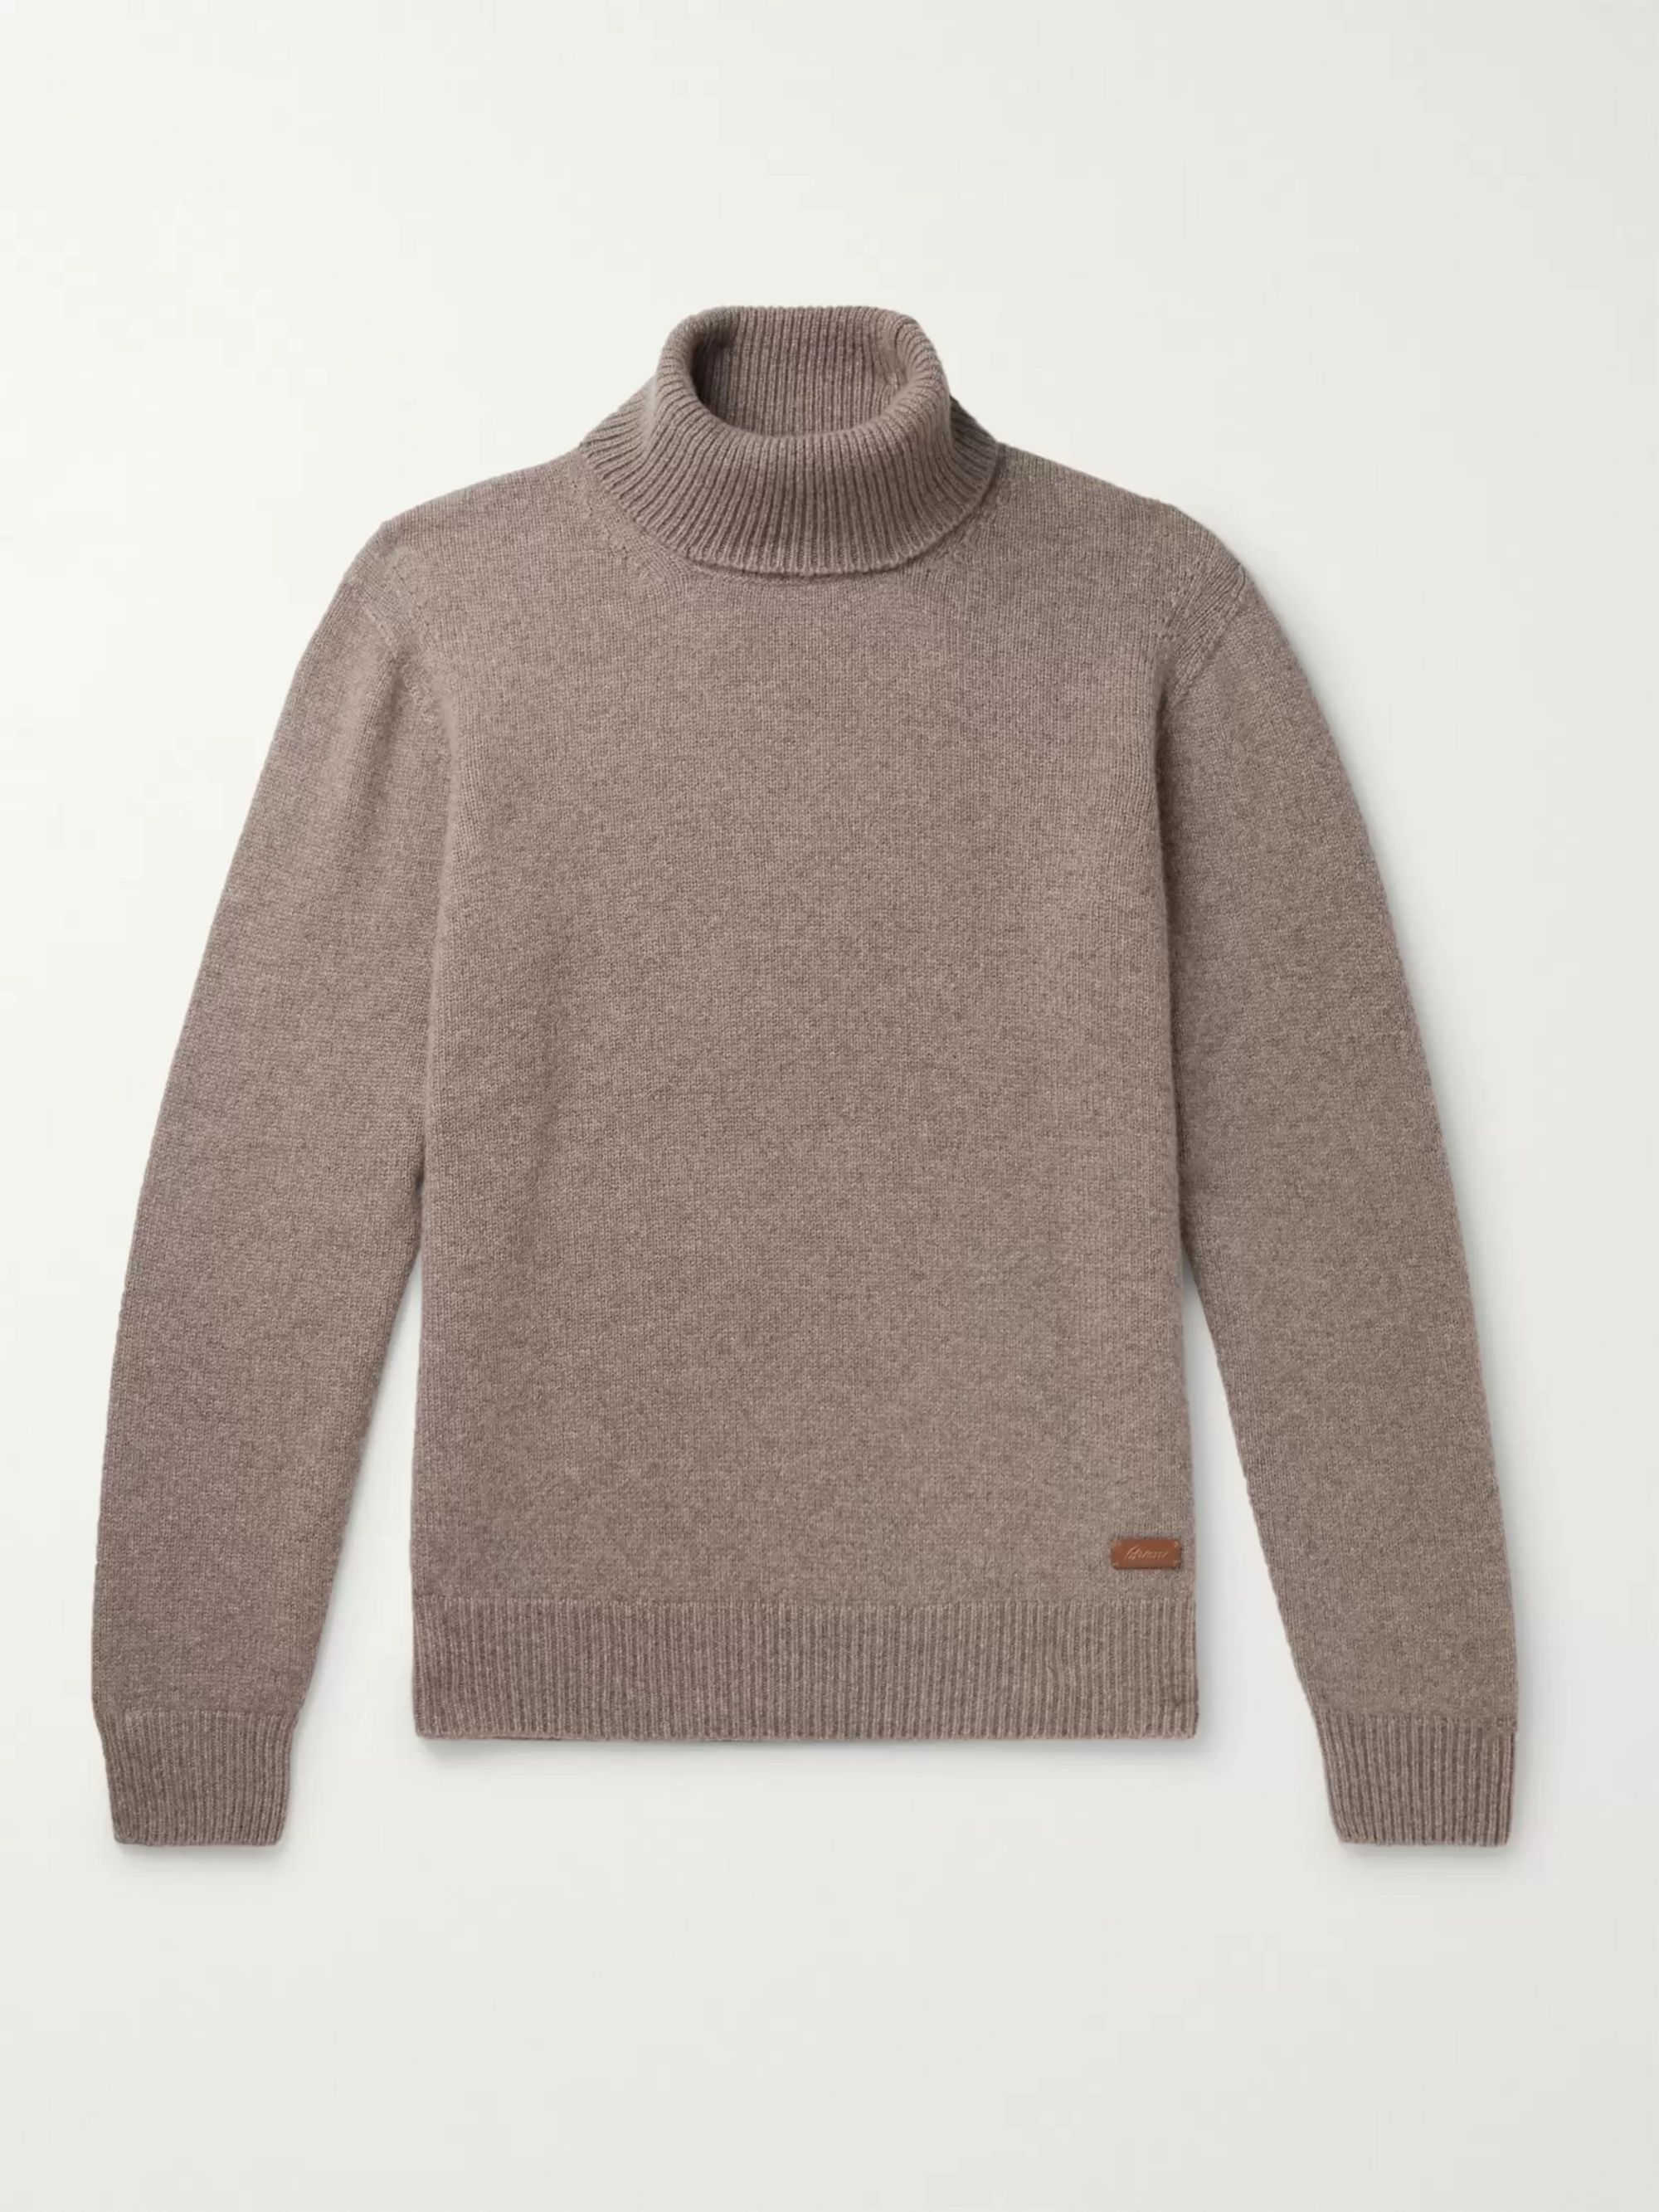 Logo Appliquéd Cashmere Rollneck Sweater by Brioni